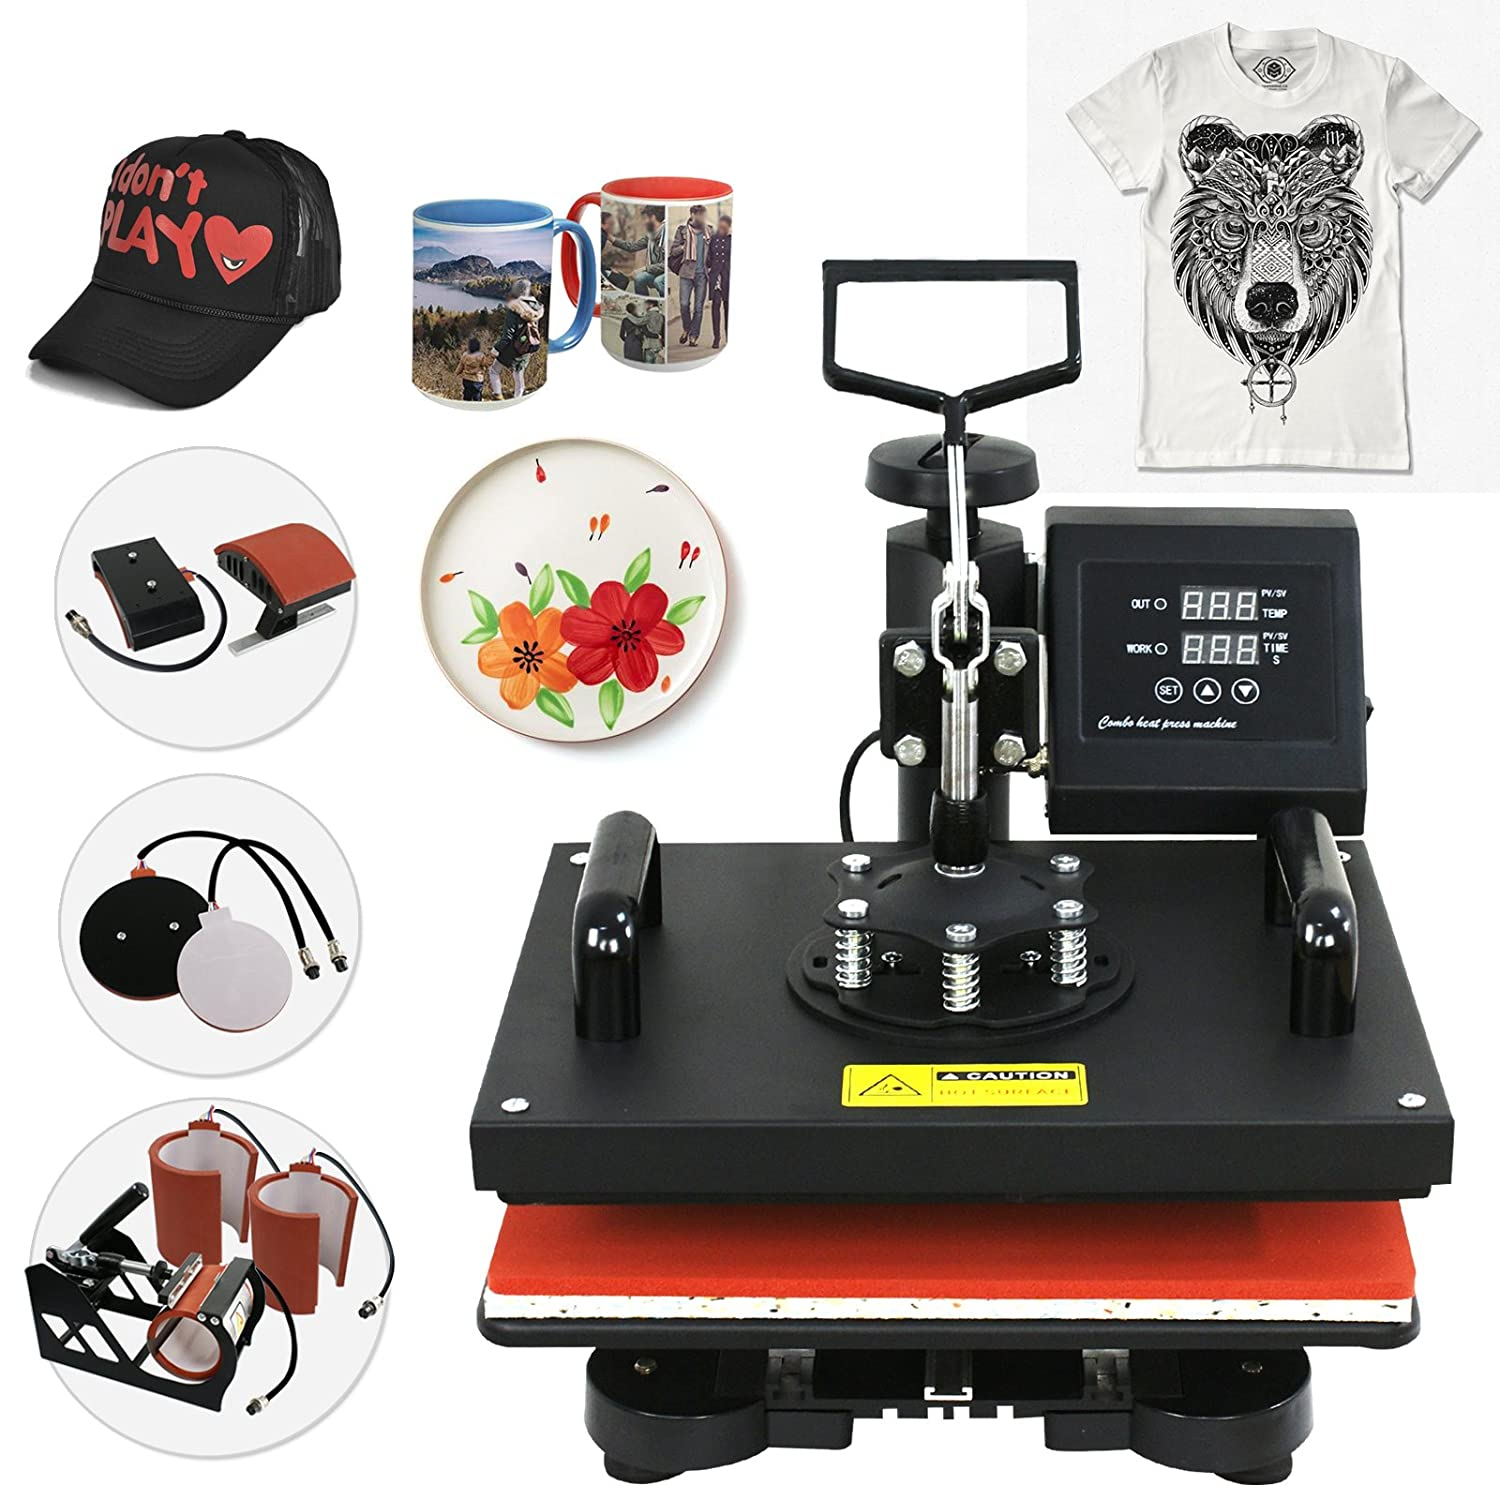 SUPER DEAL 6 in 1 Digital Swing Away Heat Press Clamshell Transfer Machine, T-shirts Heat Press + Mug Press + Cap/Hat Press + Plates Press T31